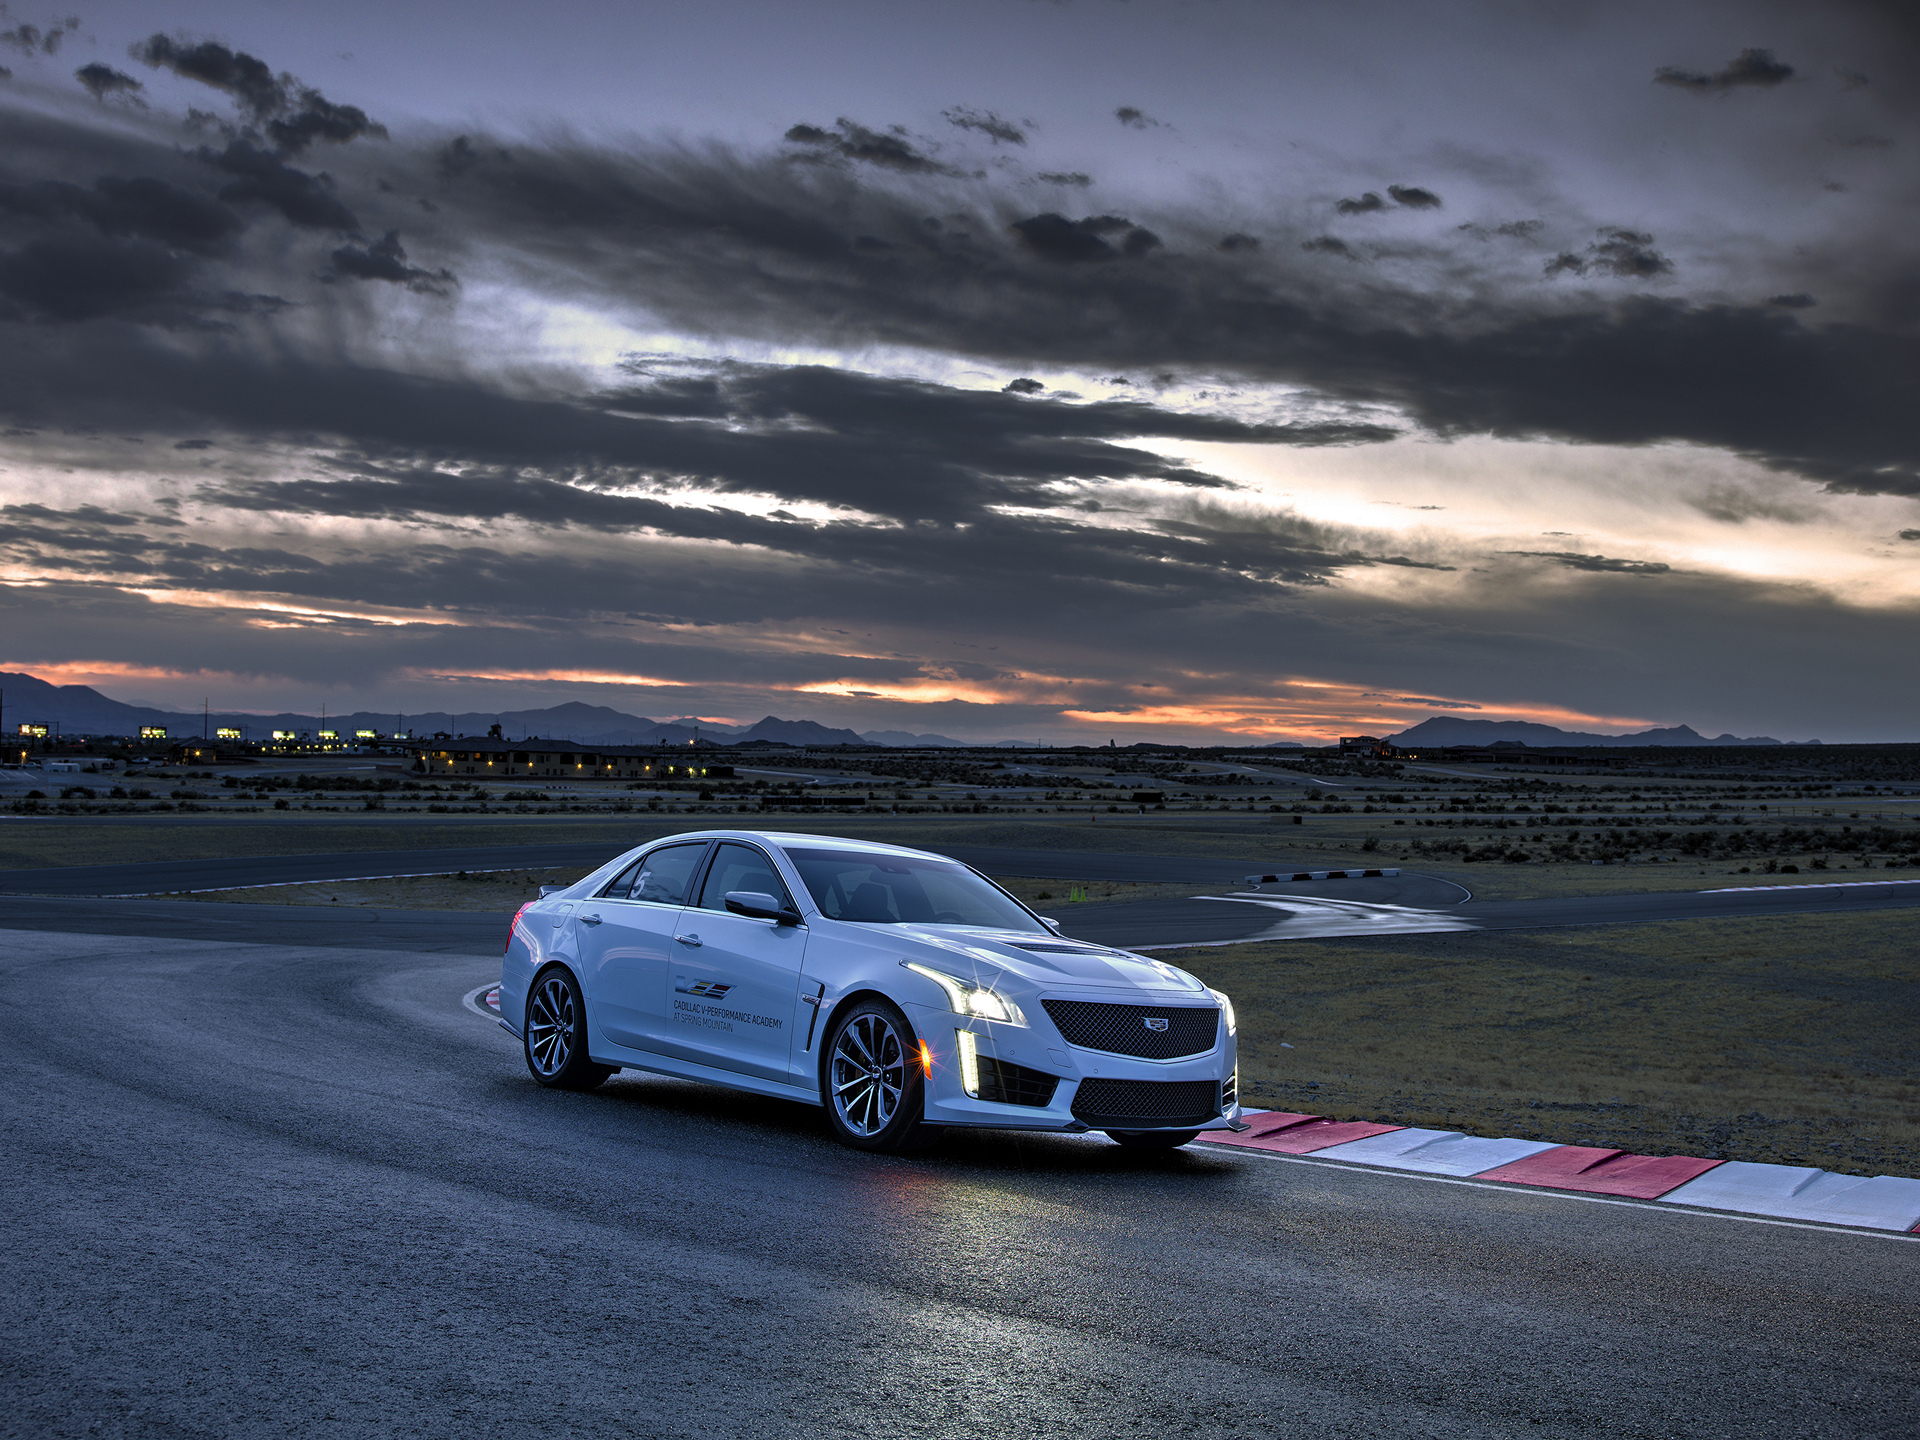 The Cadillac CTS-V at the Cadillac V-Performance Academy © General Motors